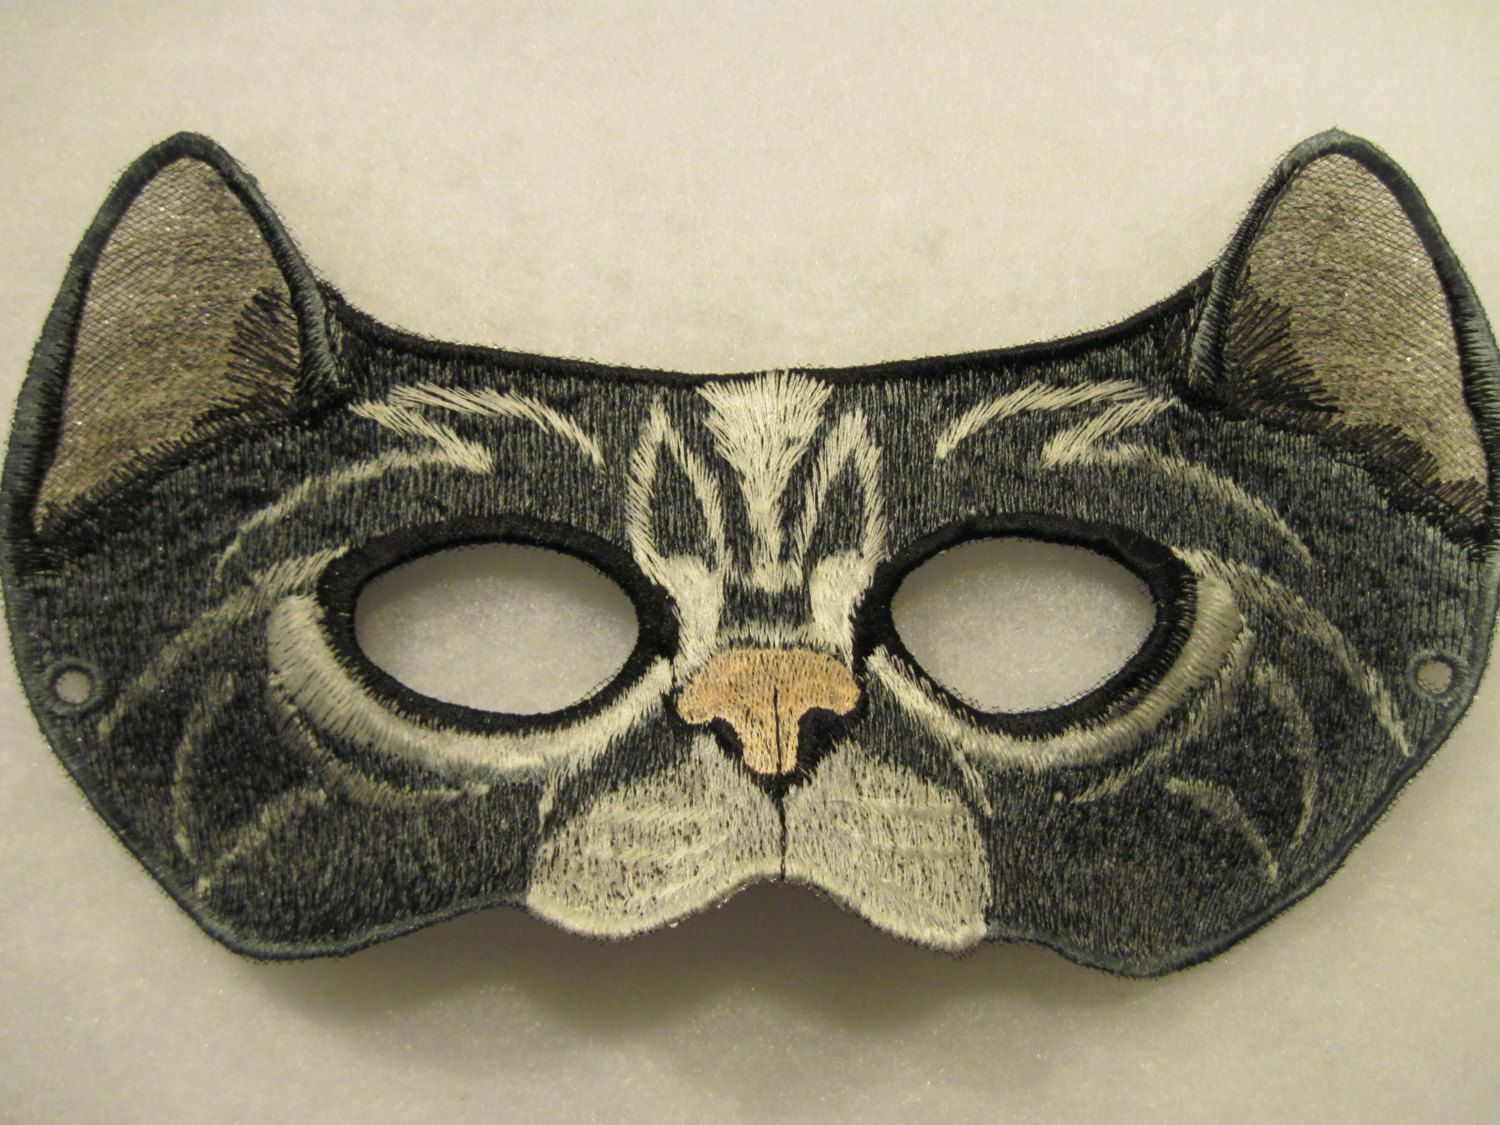 Cat Eyes Mask - in Black and Gray. $18.00, via Etsy.